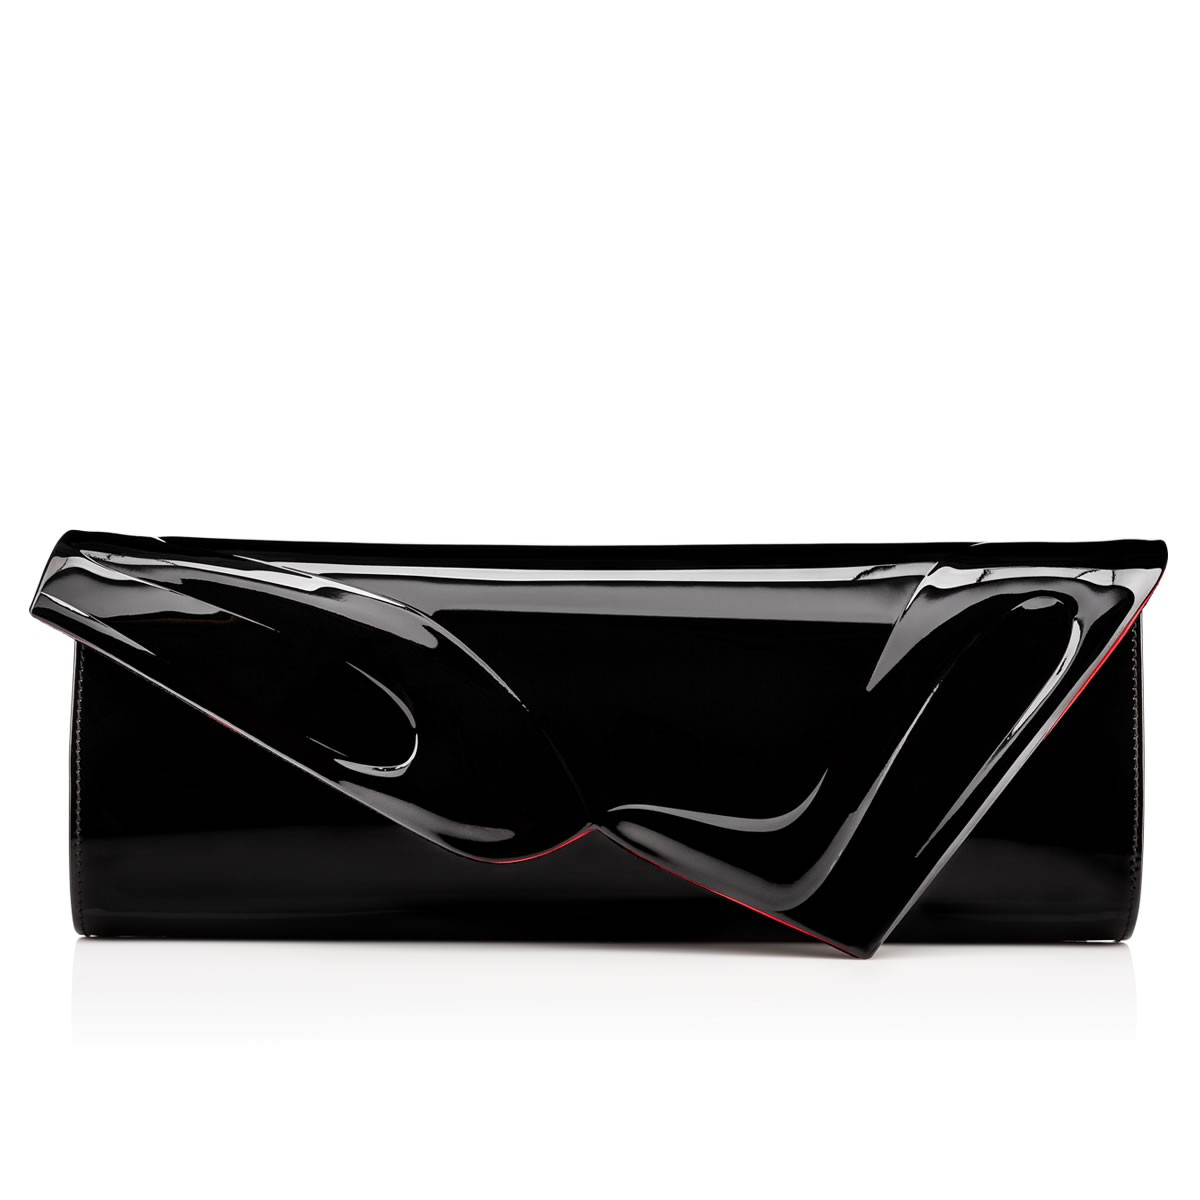 Bags - So Kate Clutch - Christian Louboutin